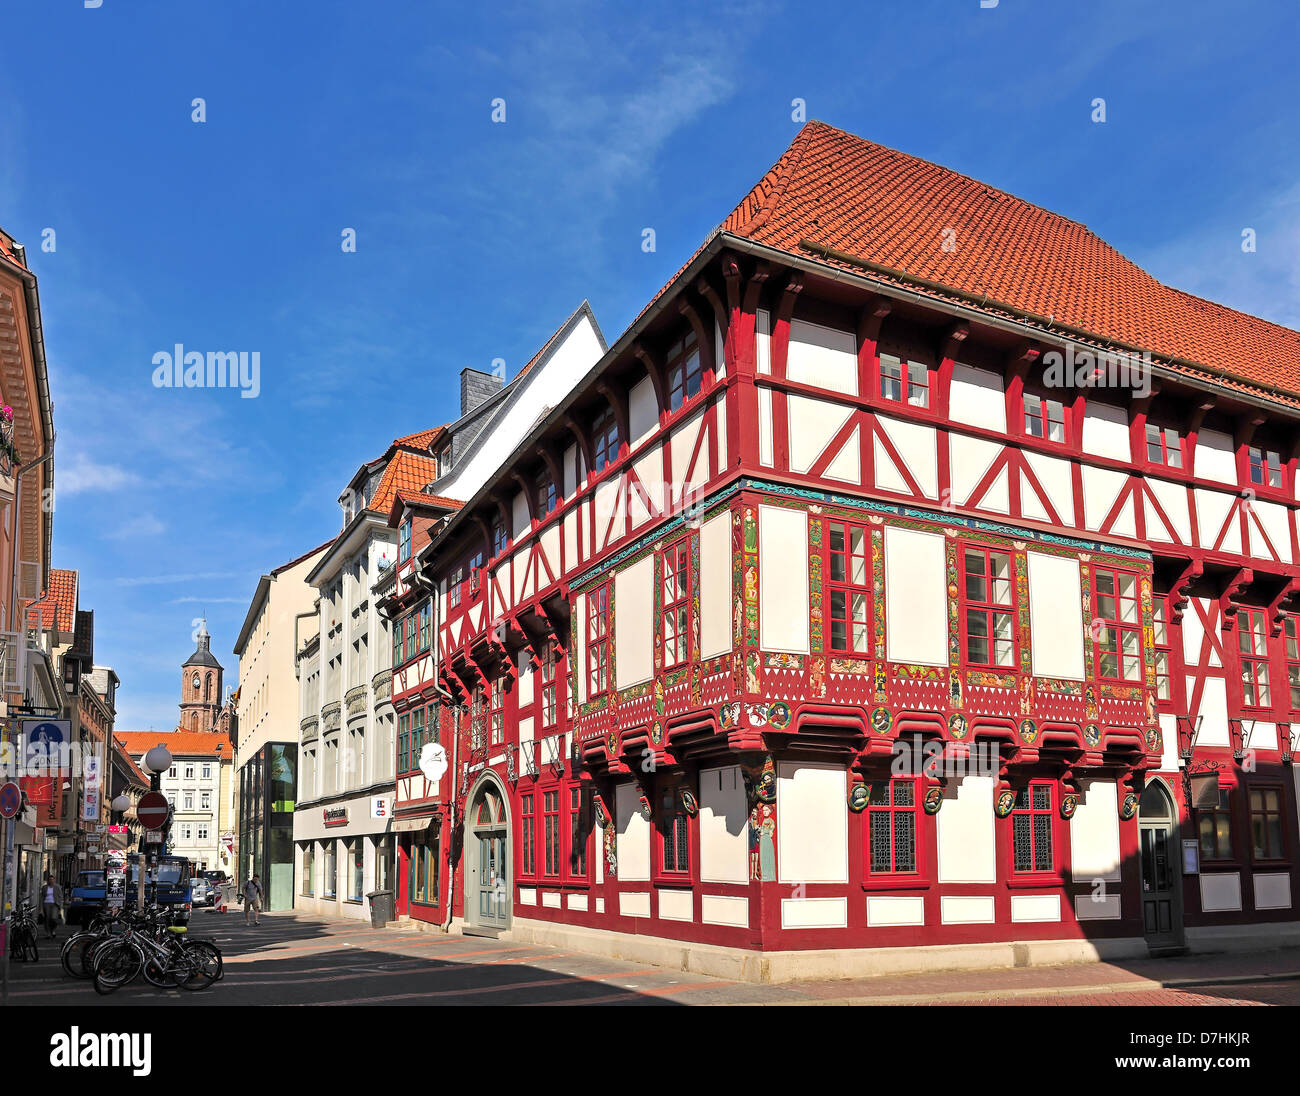 The Junkernschänke, the oldest wine bar in Goettingen, Germany - Stock Image